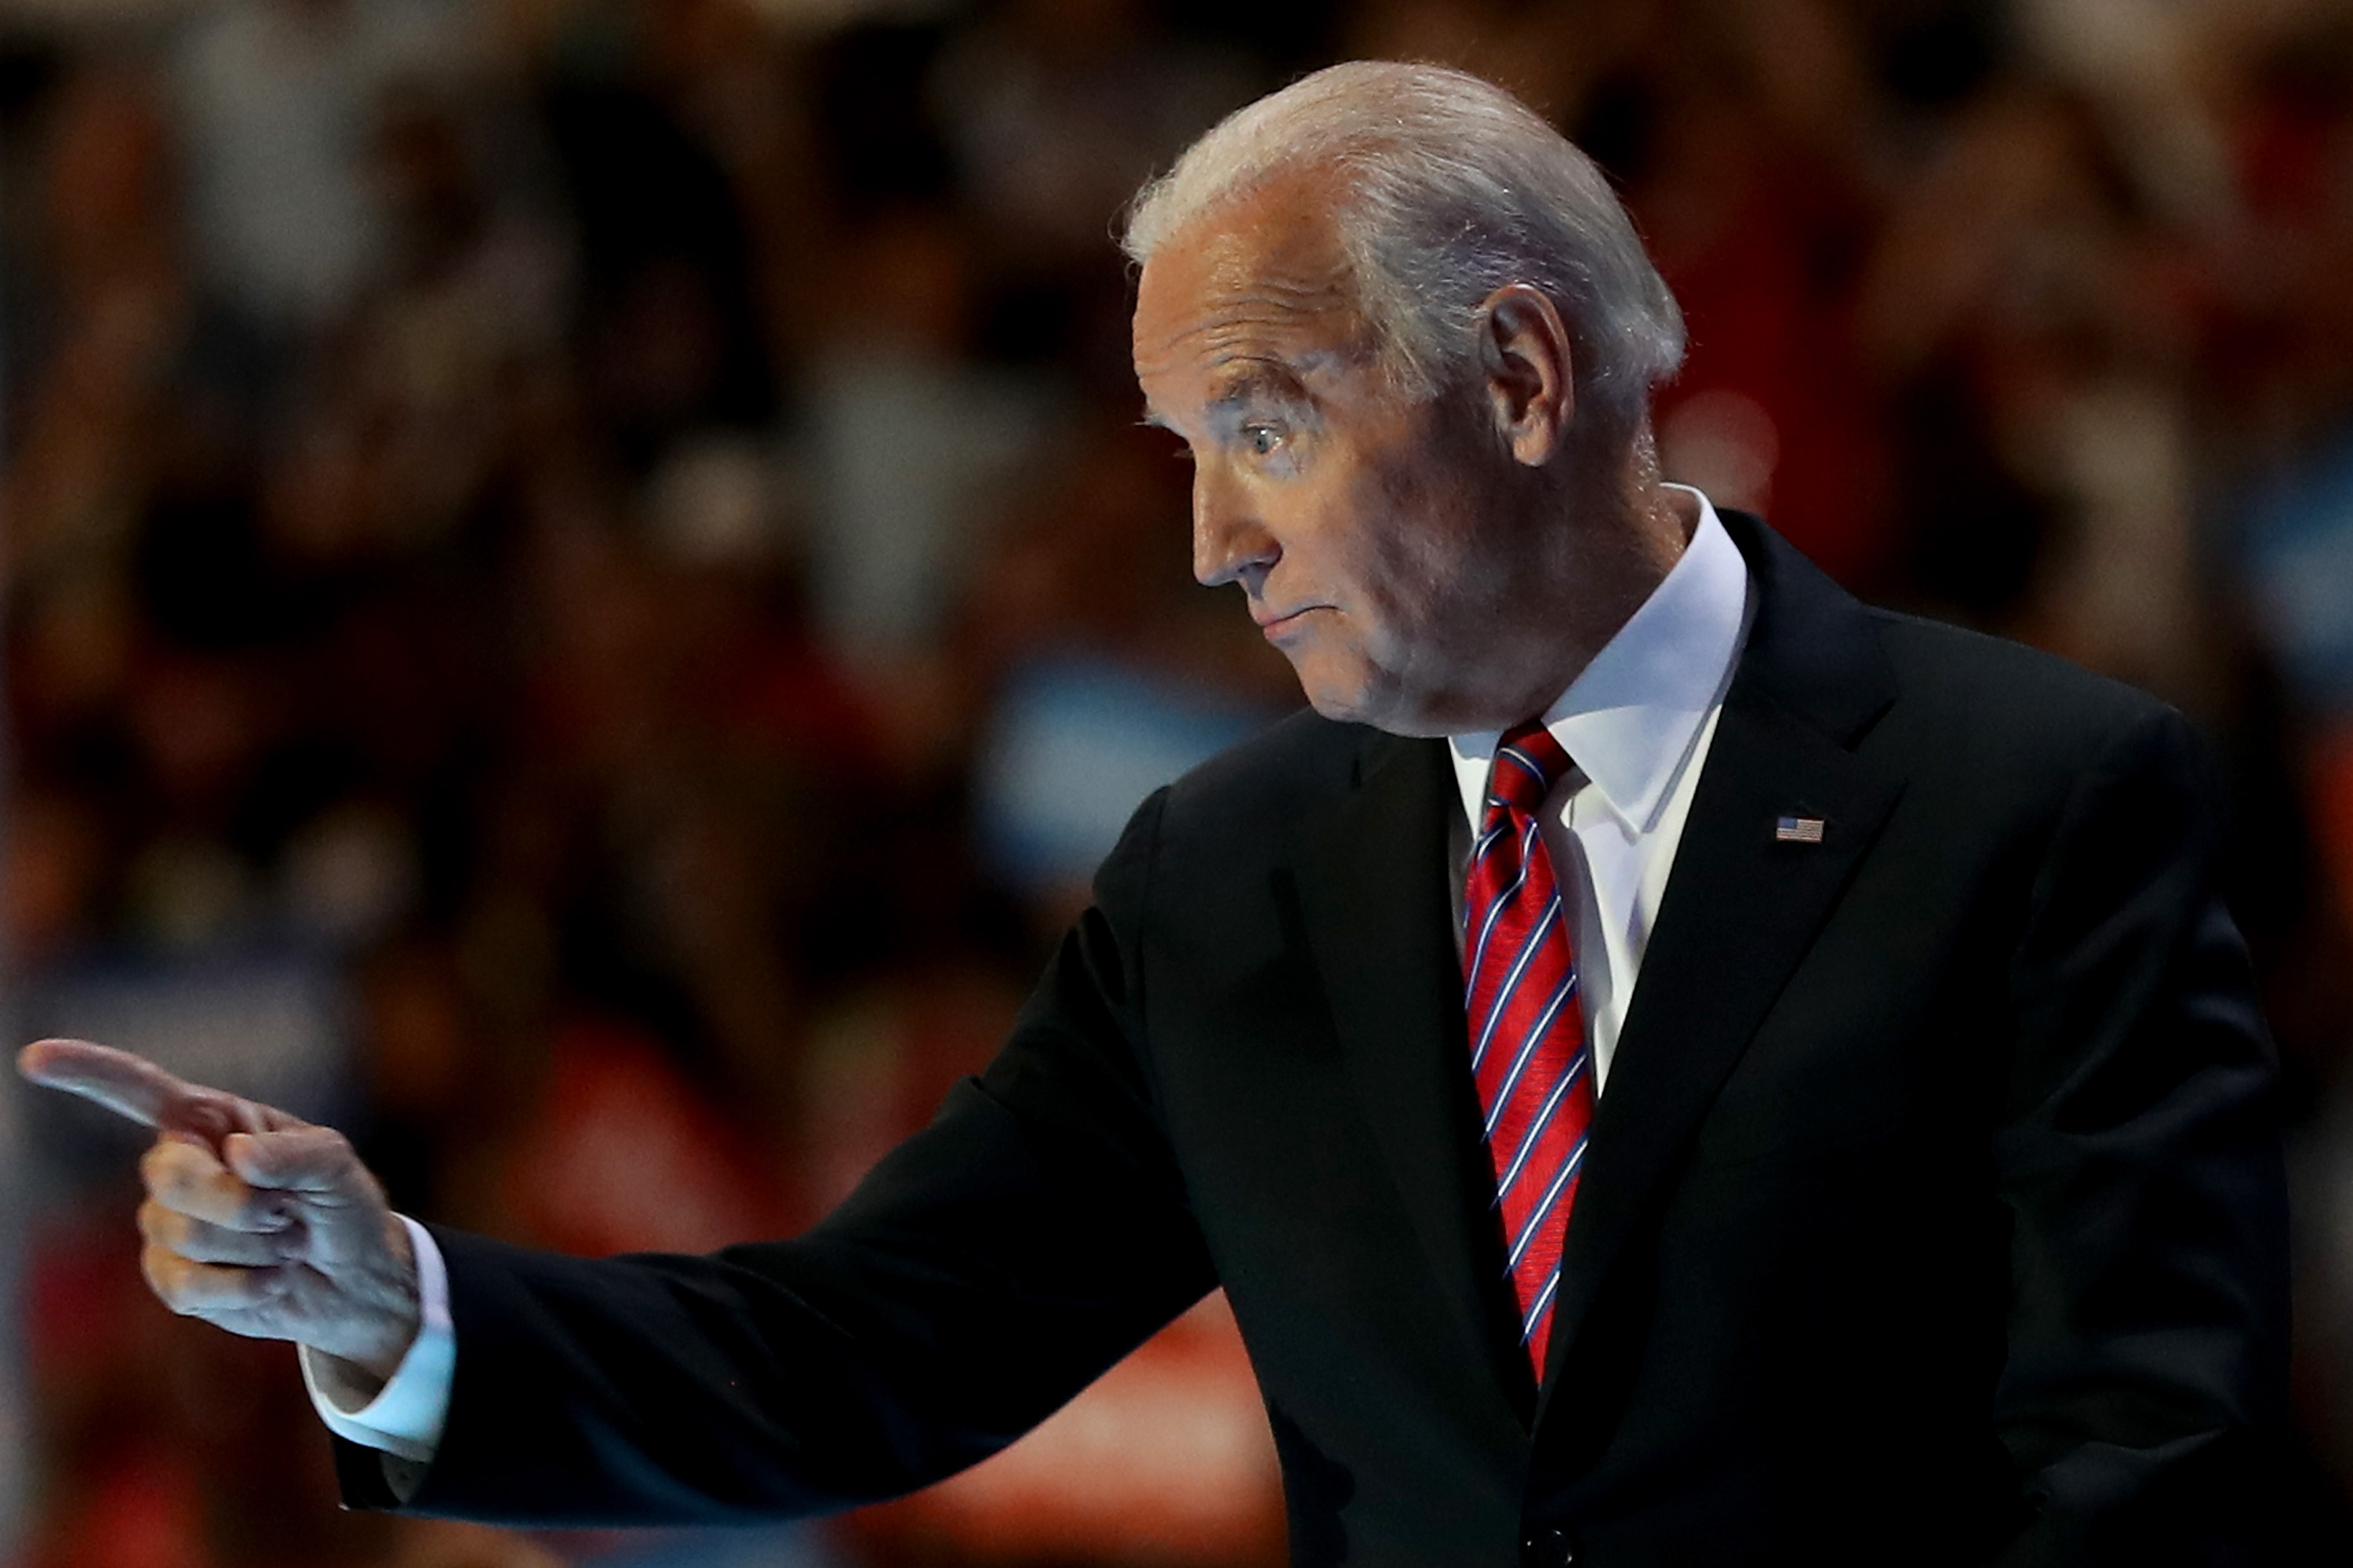 US Vice President Joe Biden delivers remarks on the third day of the Democratic National Convention at the Wells Fargo Center on July 27, 2016 in Philadelphia, Pennsylvania.